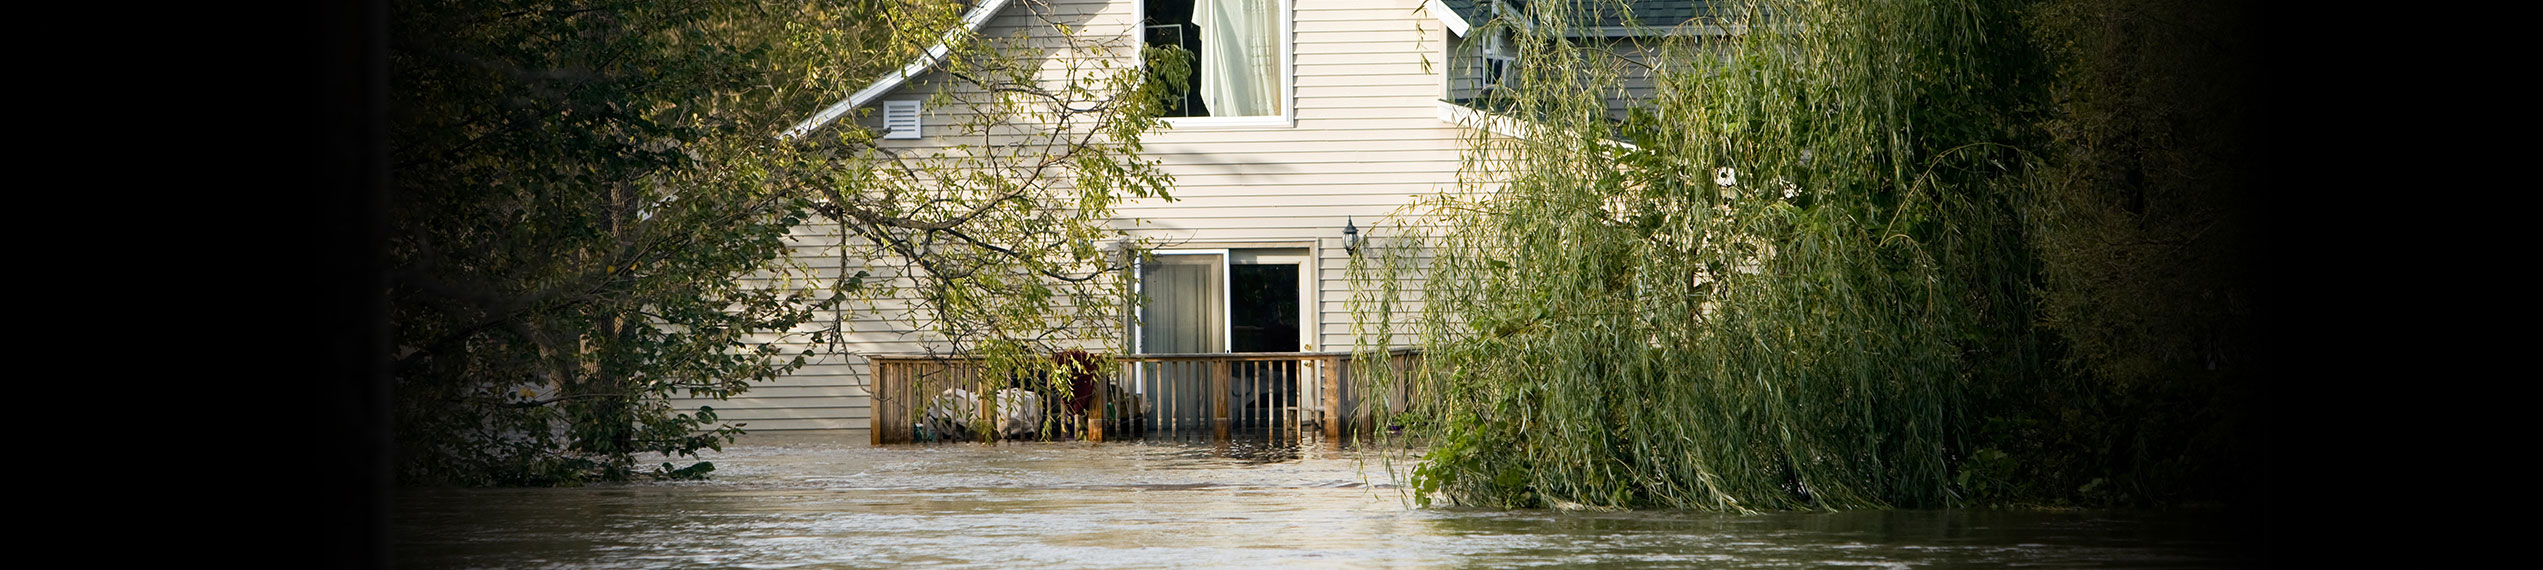 Water & Flood Damage Removal Services in Paul Davis Restoration of Clarksville and Hopkinsville KY